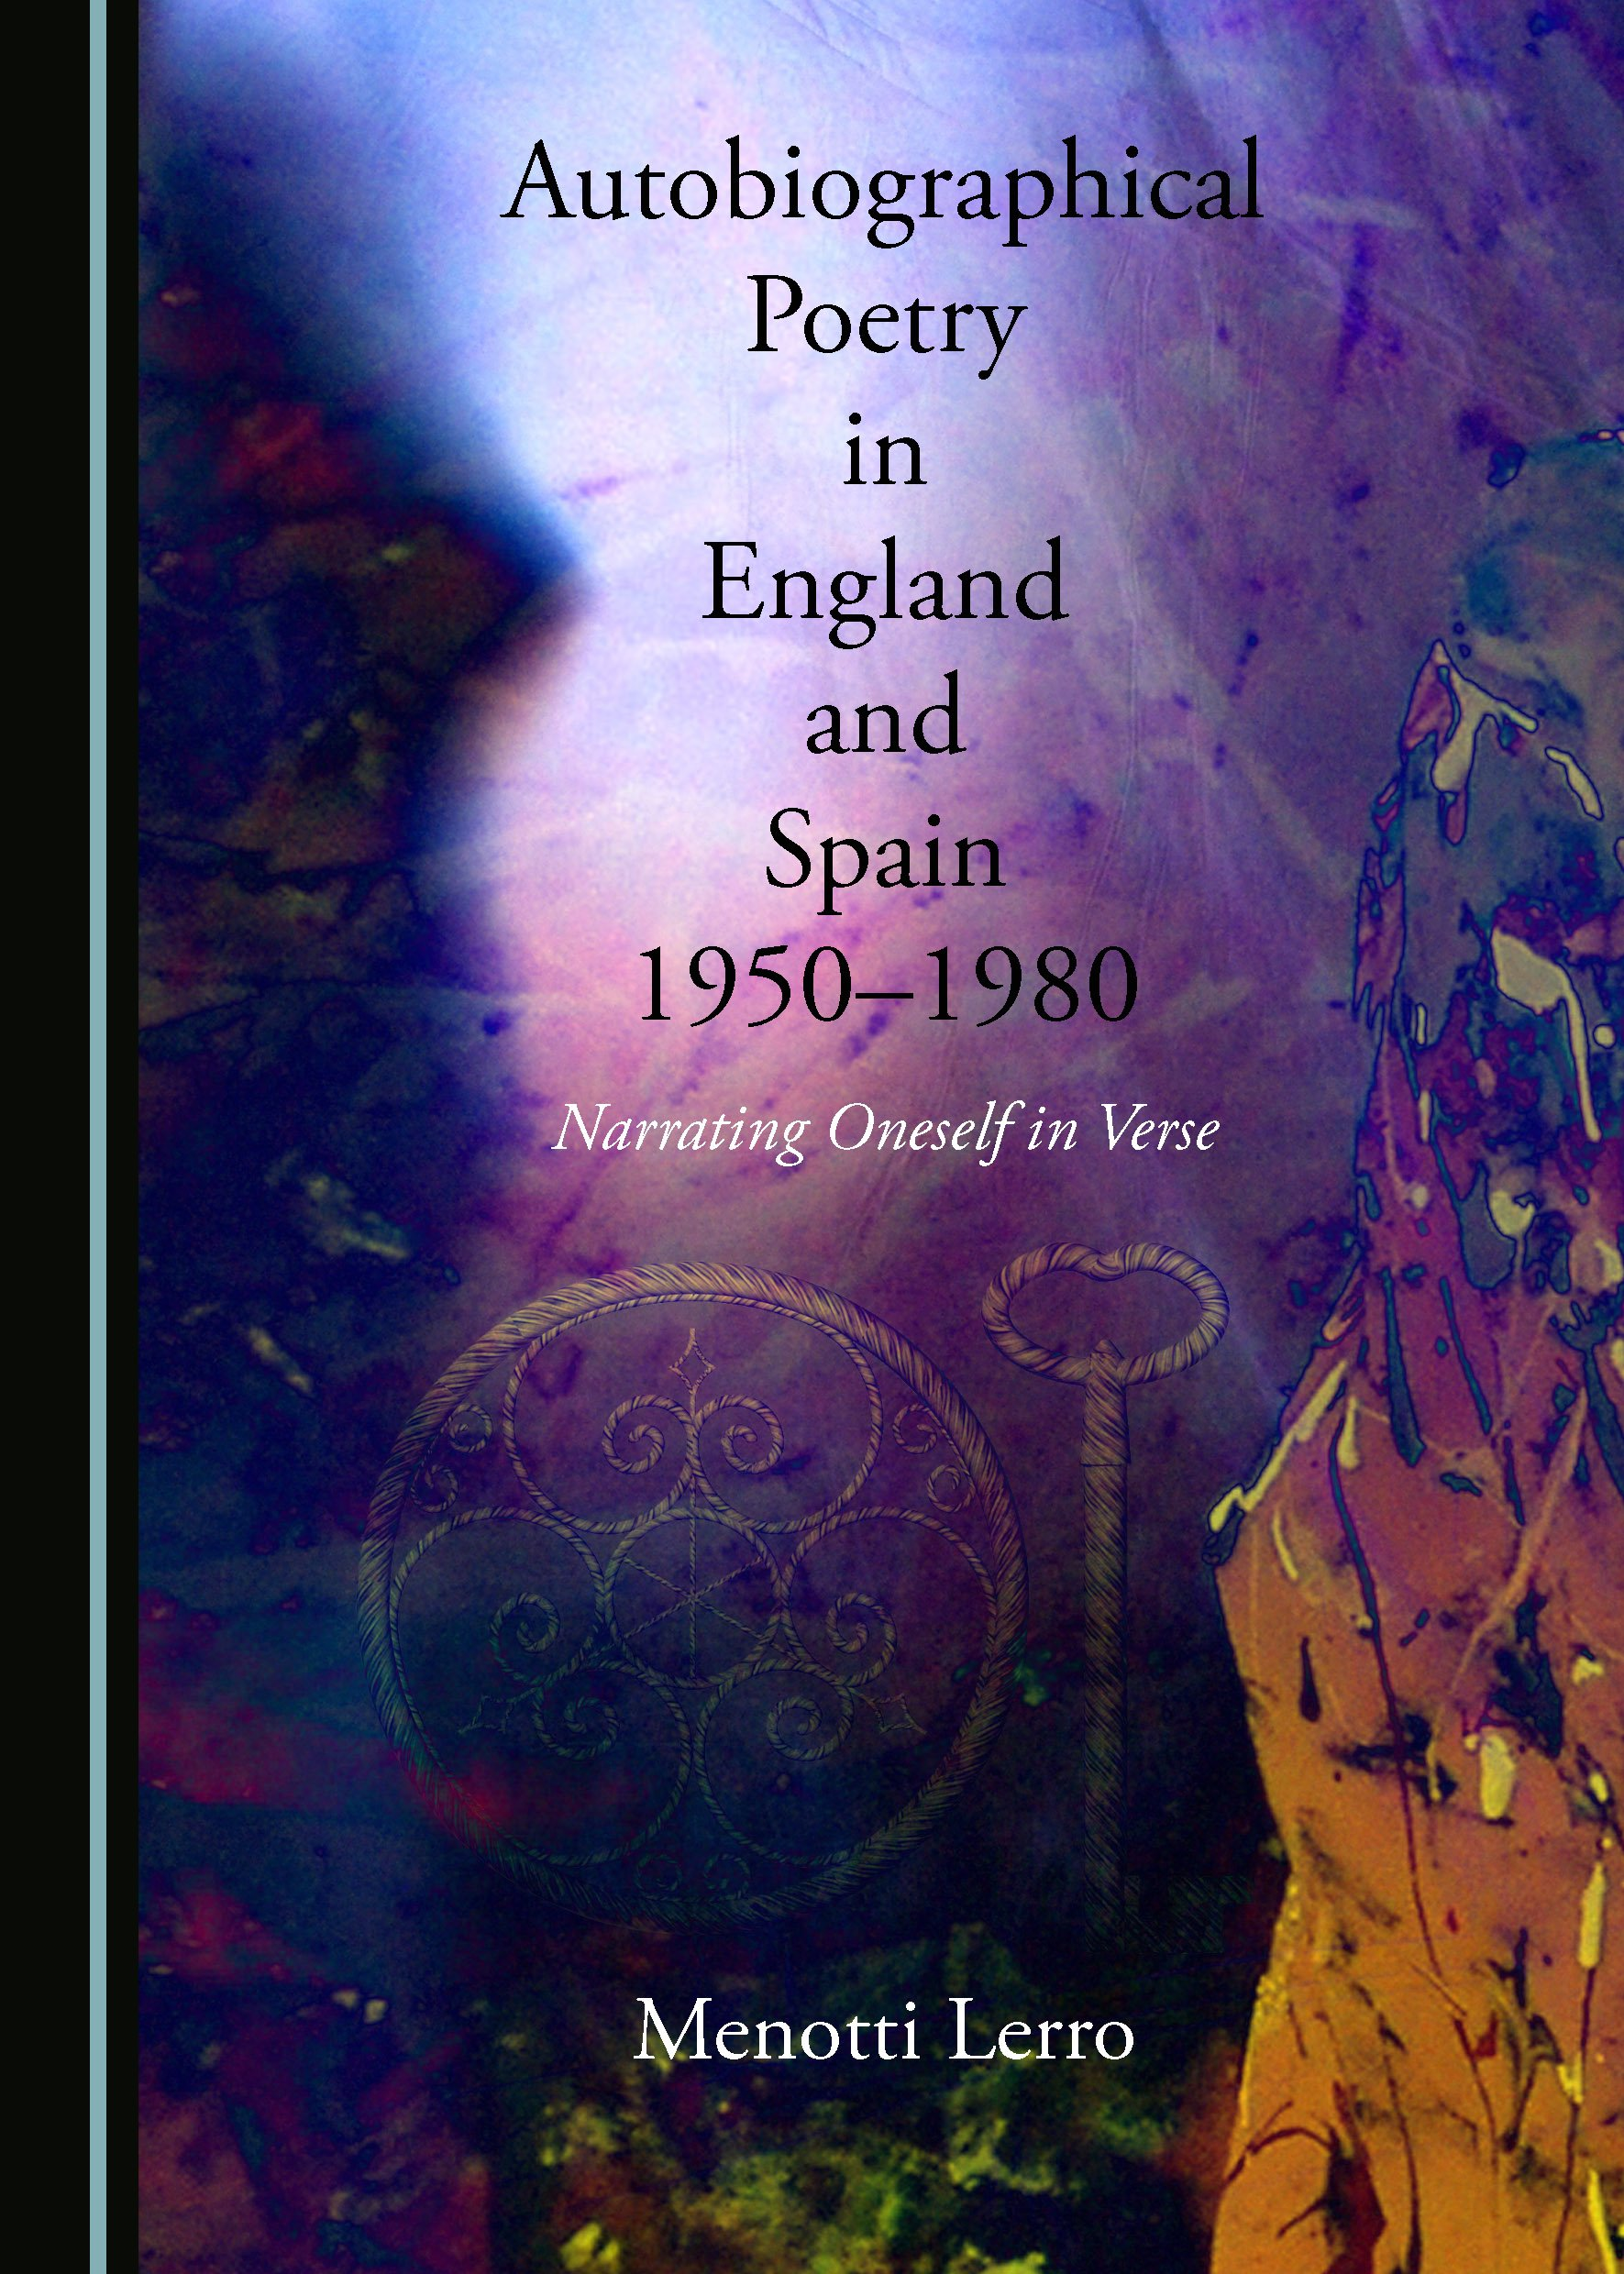 Autobiographical Poetry in England and Spain, 1950-1980: Narrating Oneself in Verse